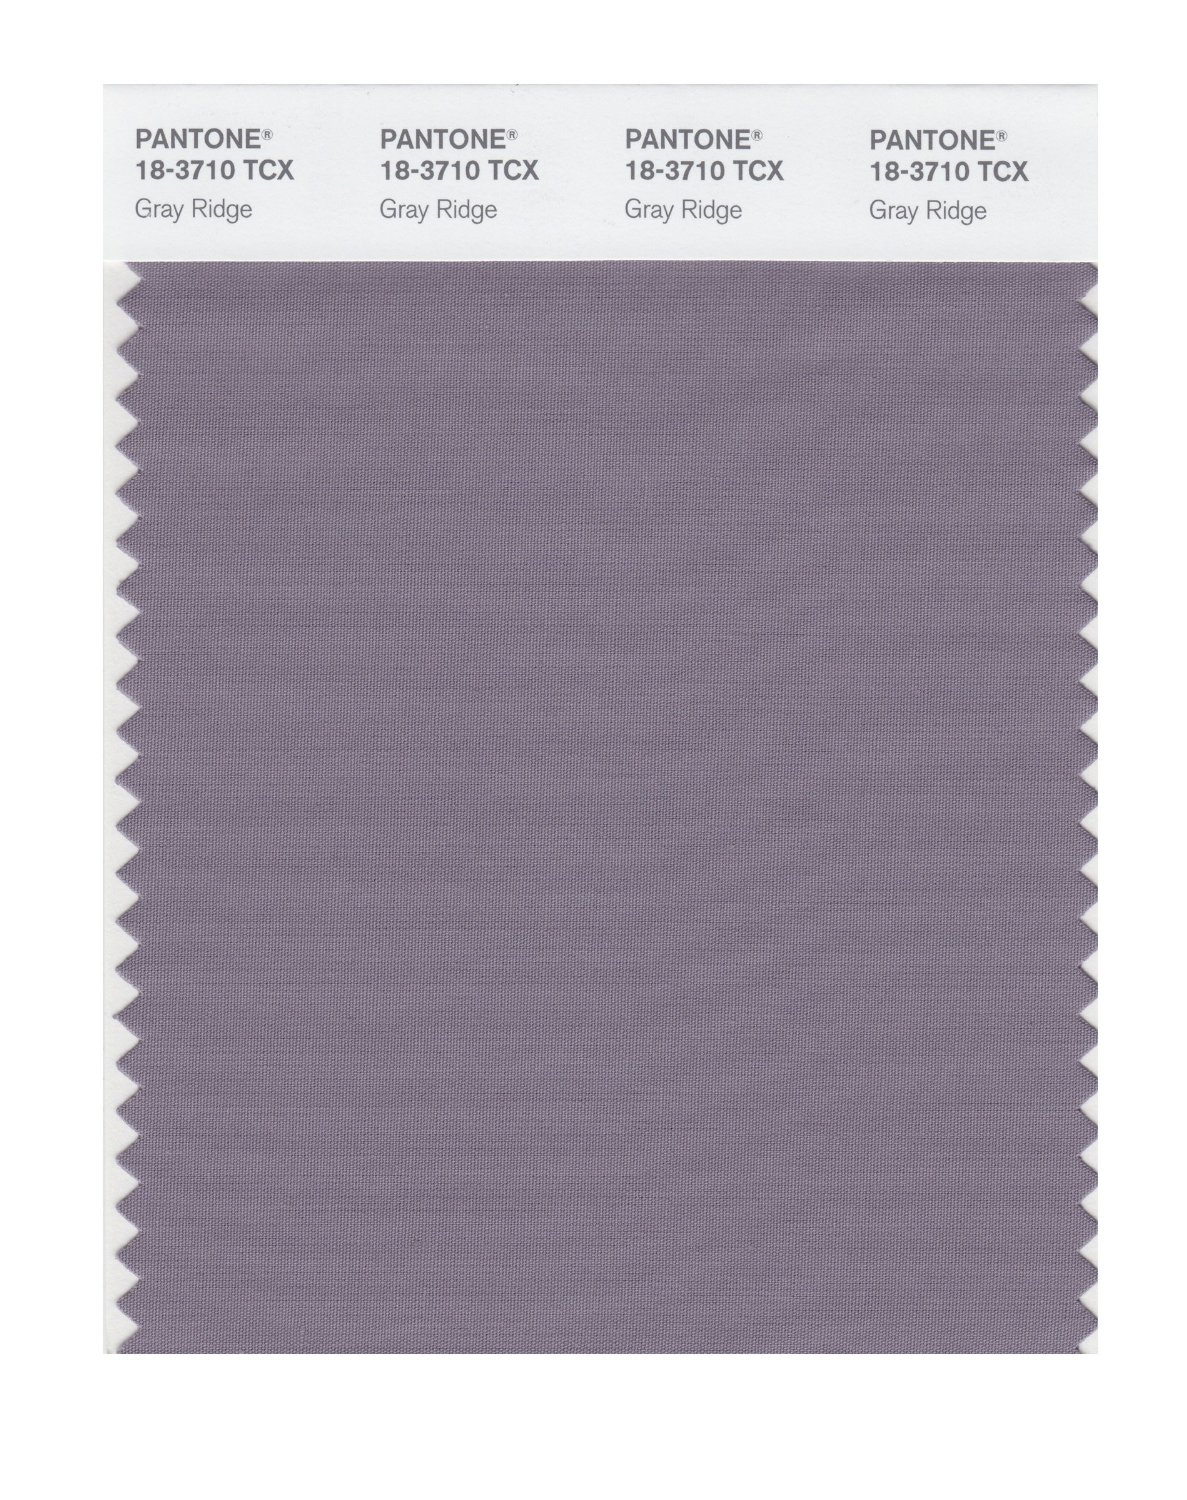 Pantone Smart Swatch 18-3710 Gray Ridge